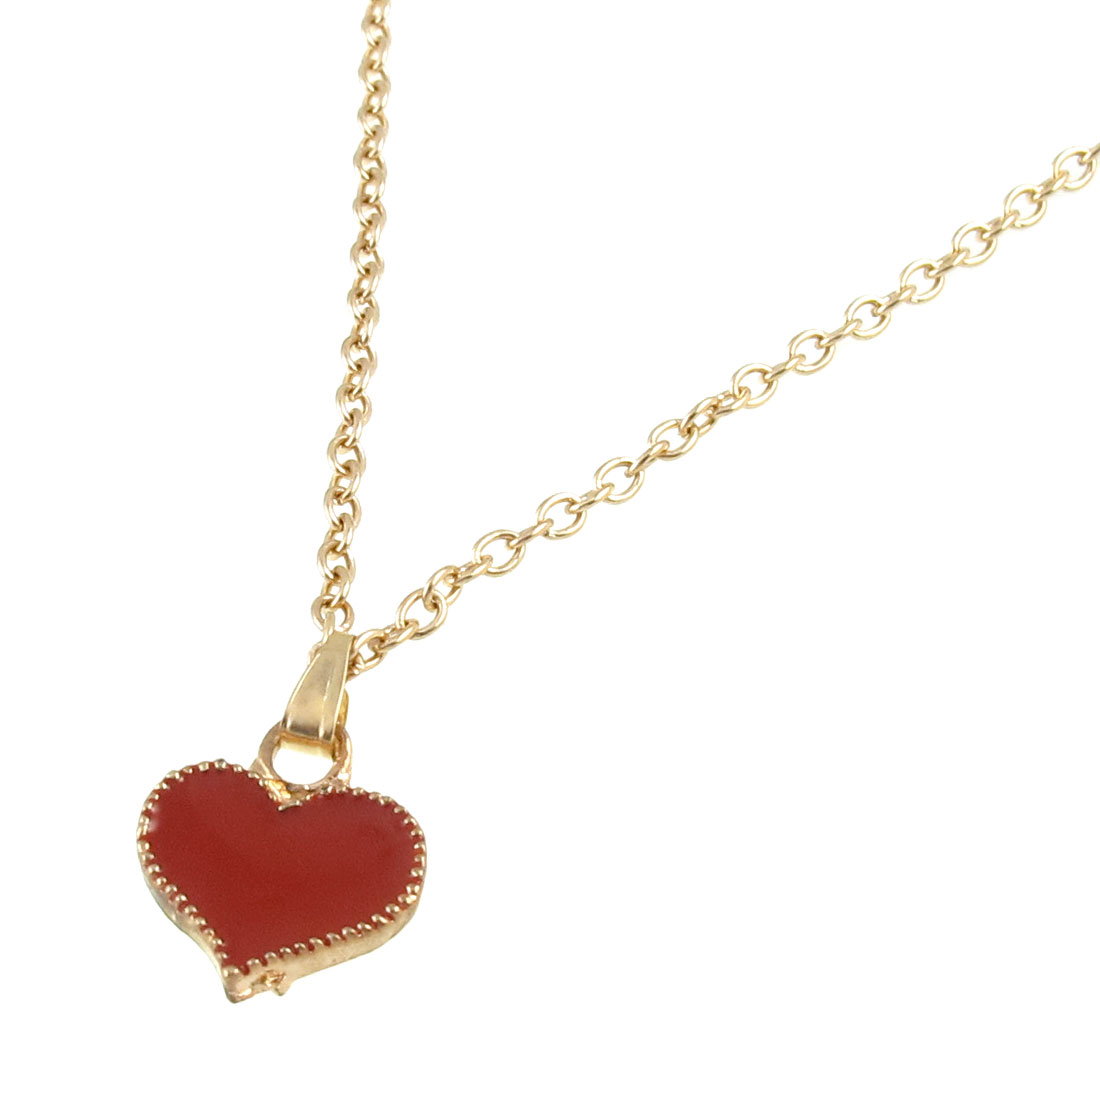 Red Heart Pendant Gold Tone Adjustable Chain Necklace for Lady